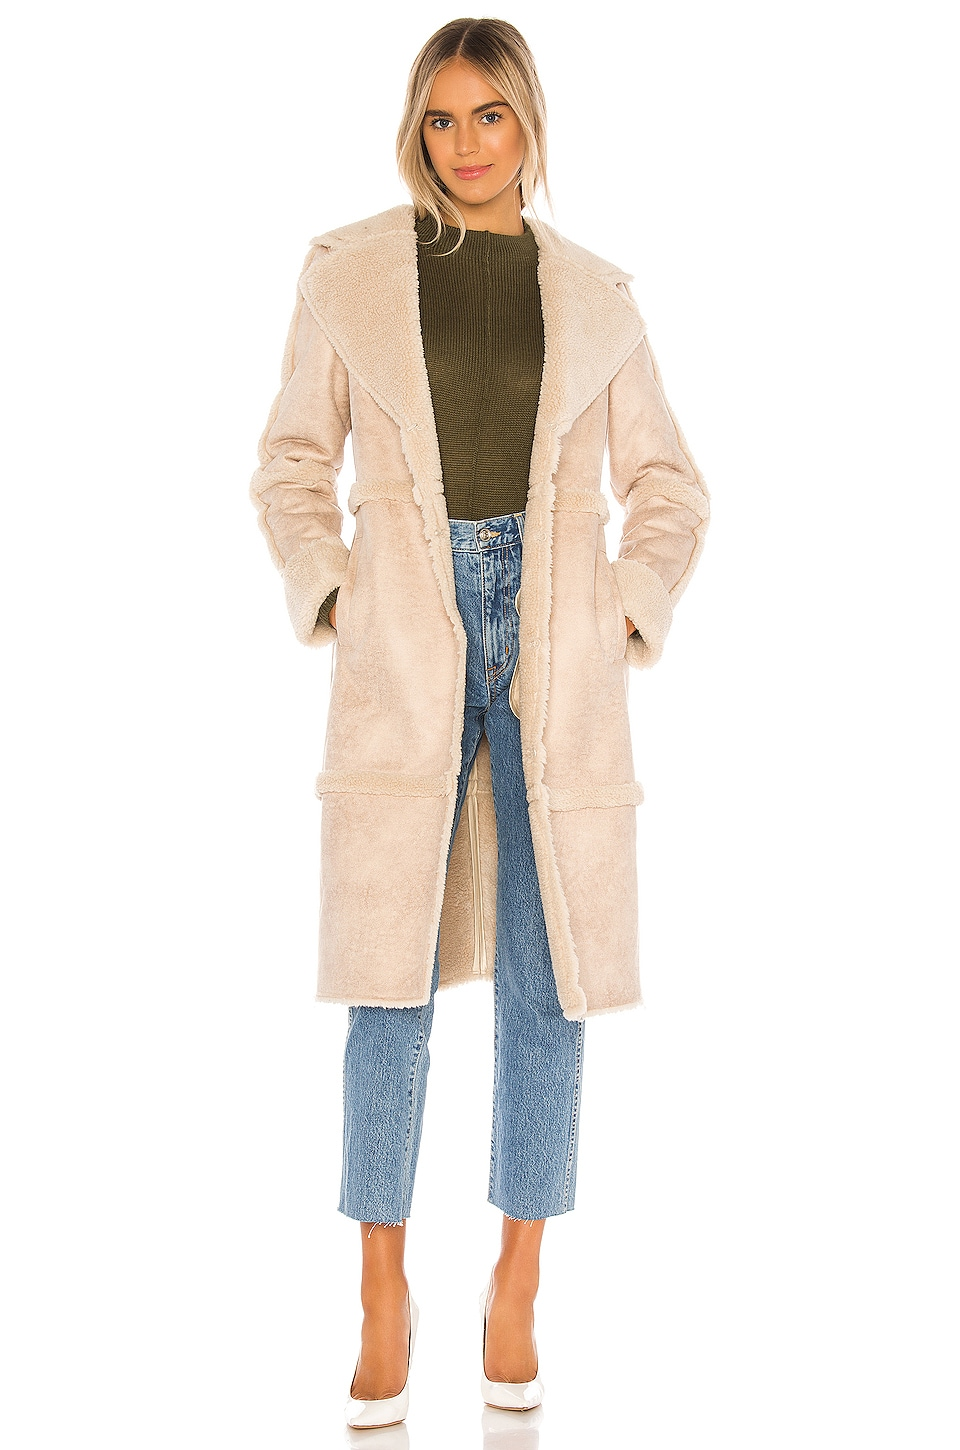 Song of Style Magnolia Coat in Fawn Beige